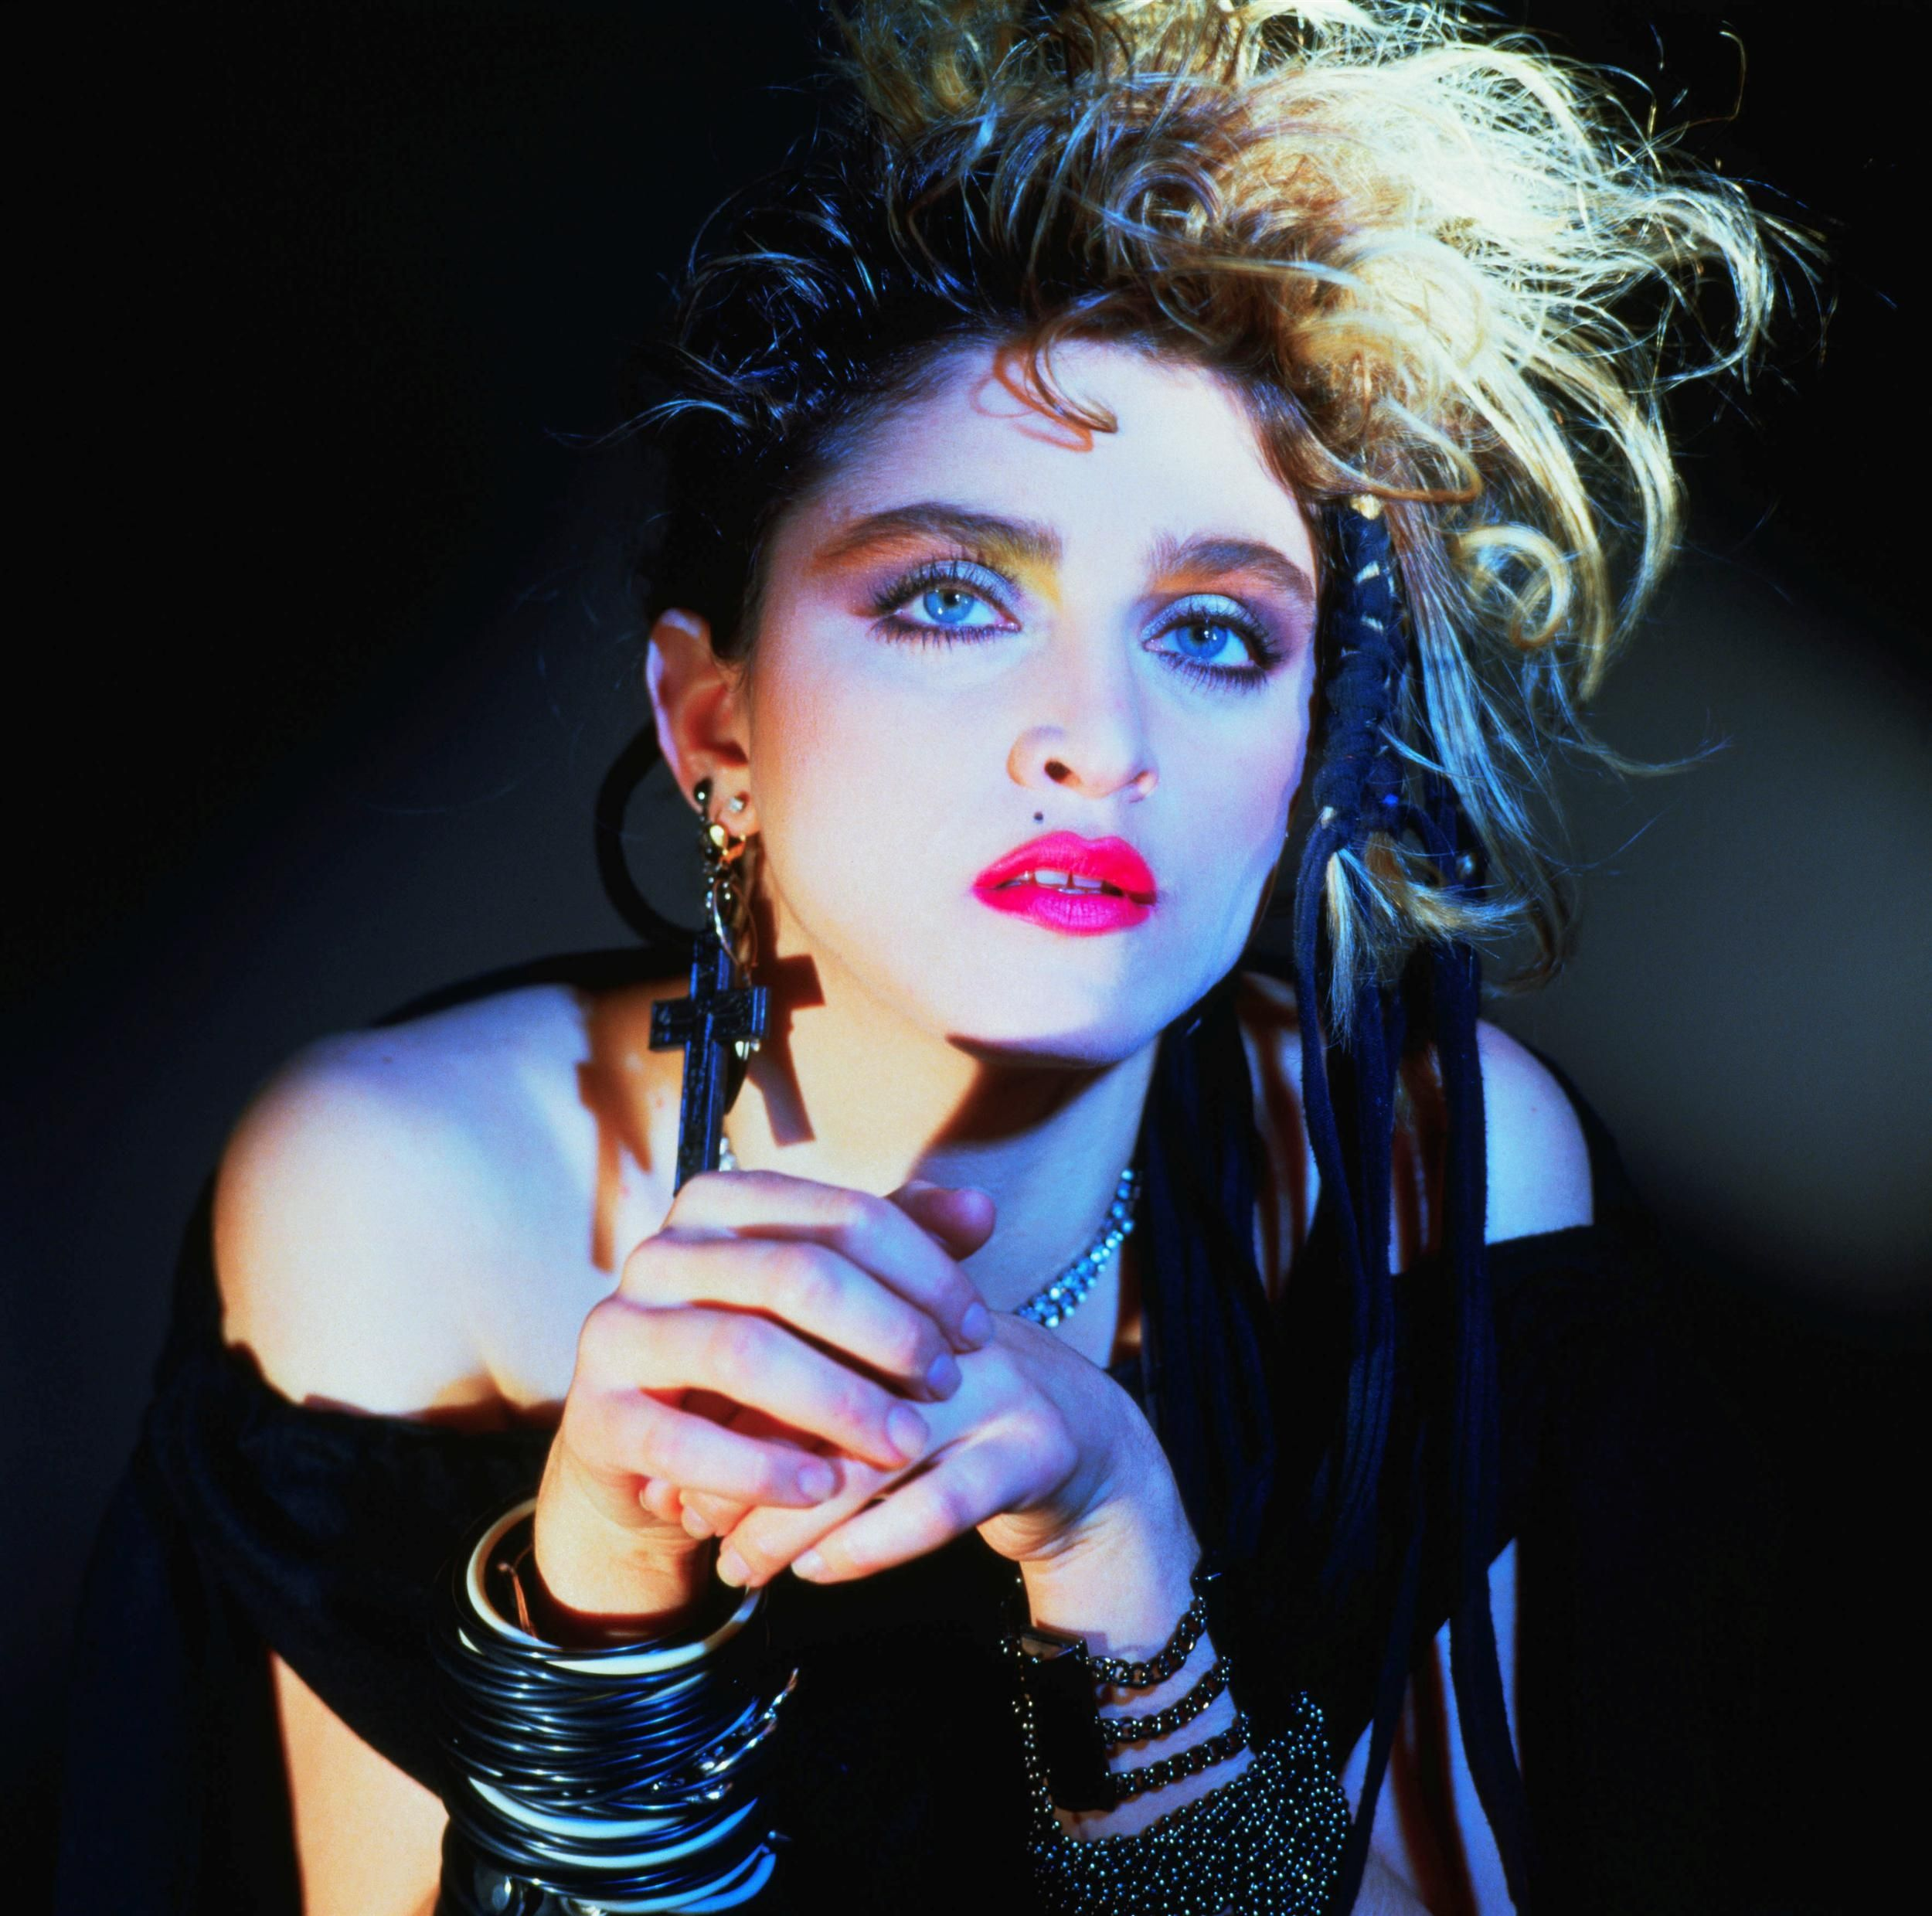 10 Beauty Icons From The 80s With Images Beauty Icons Madonna